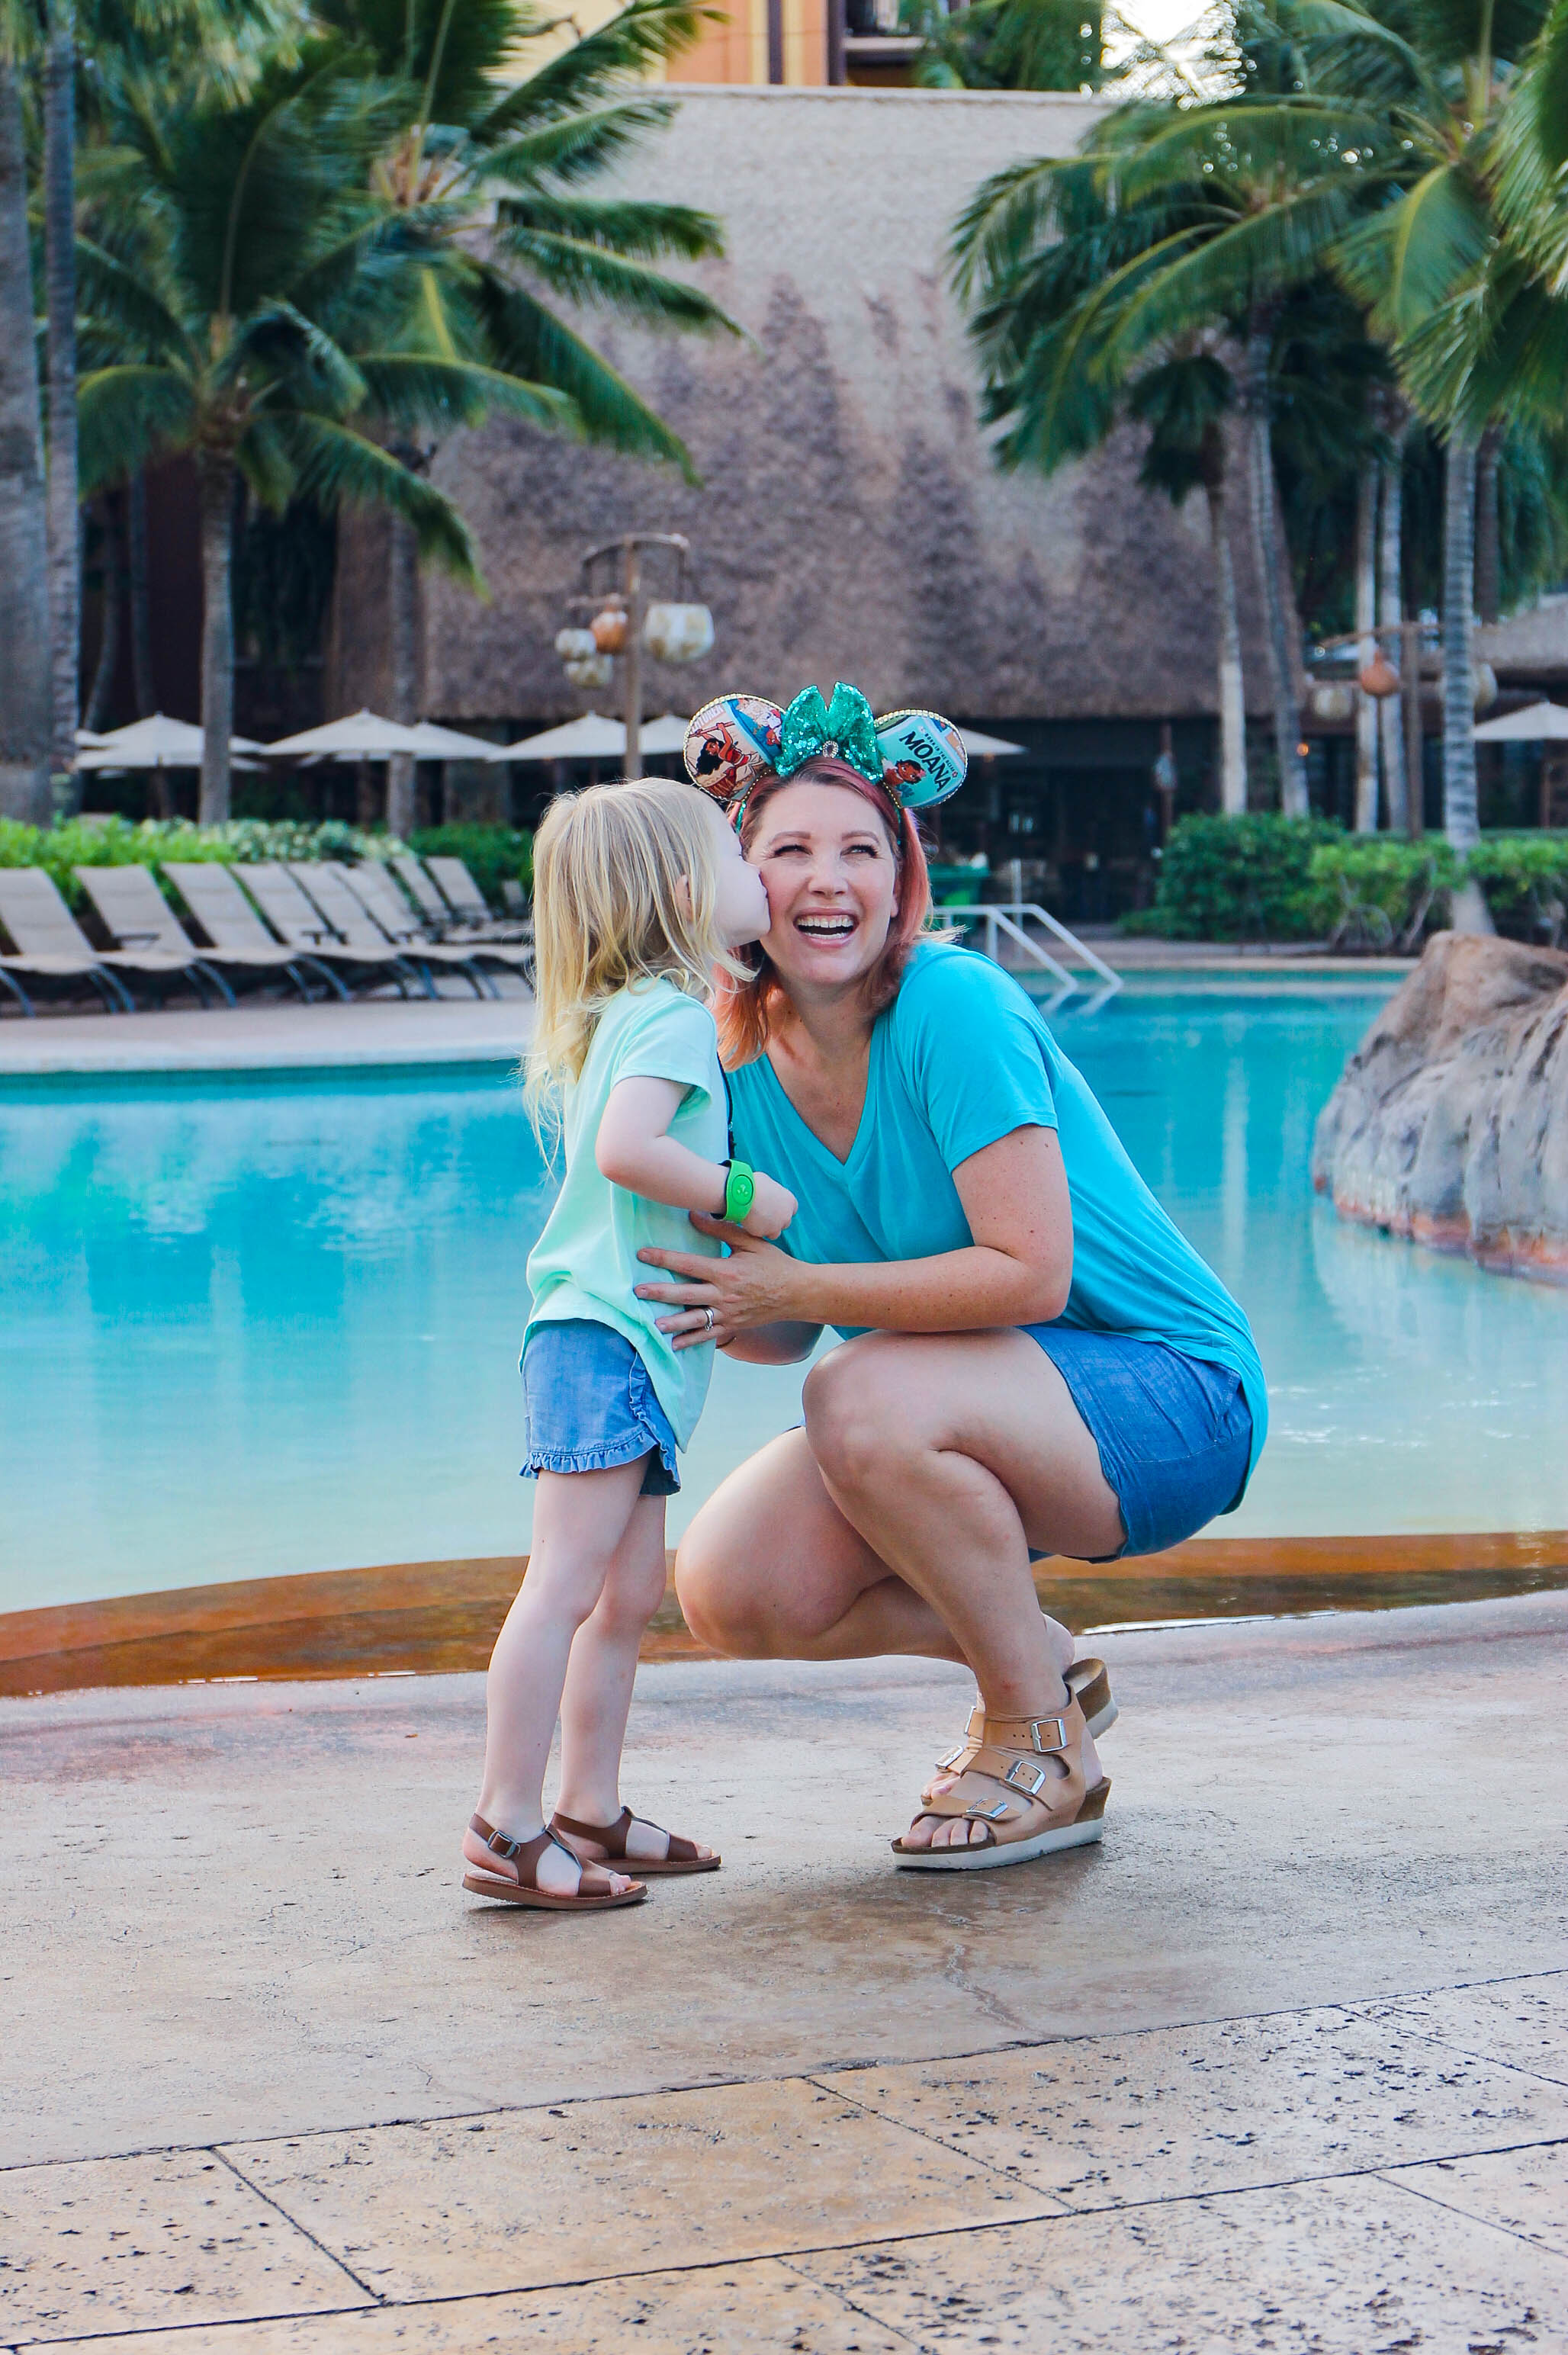 Disney Aulani: This full family travel guide shares what to schedule, where to eat, and tips for saving money on a trip to the Disney Vacation Club resort!